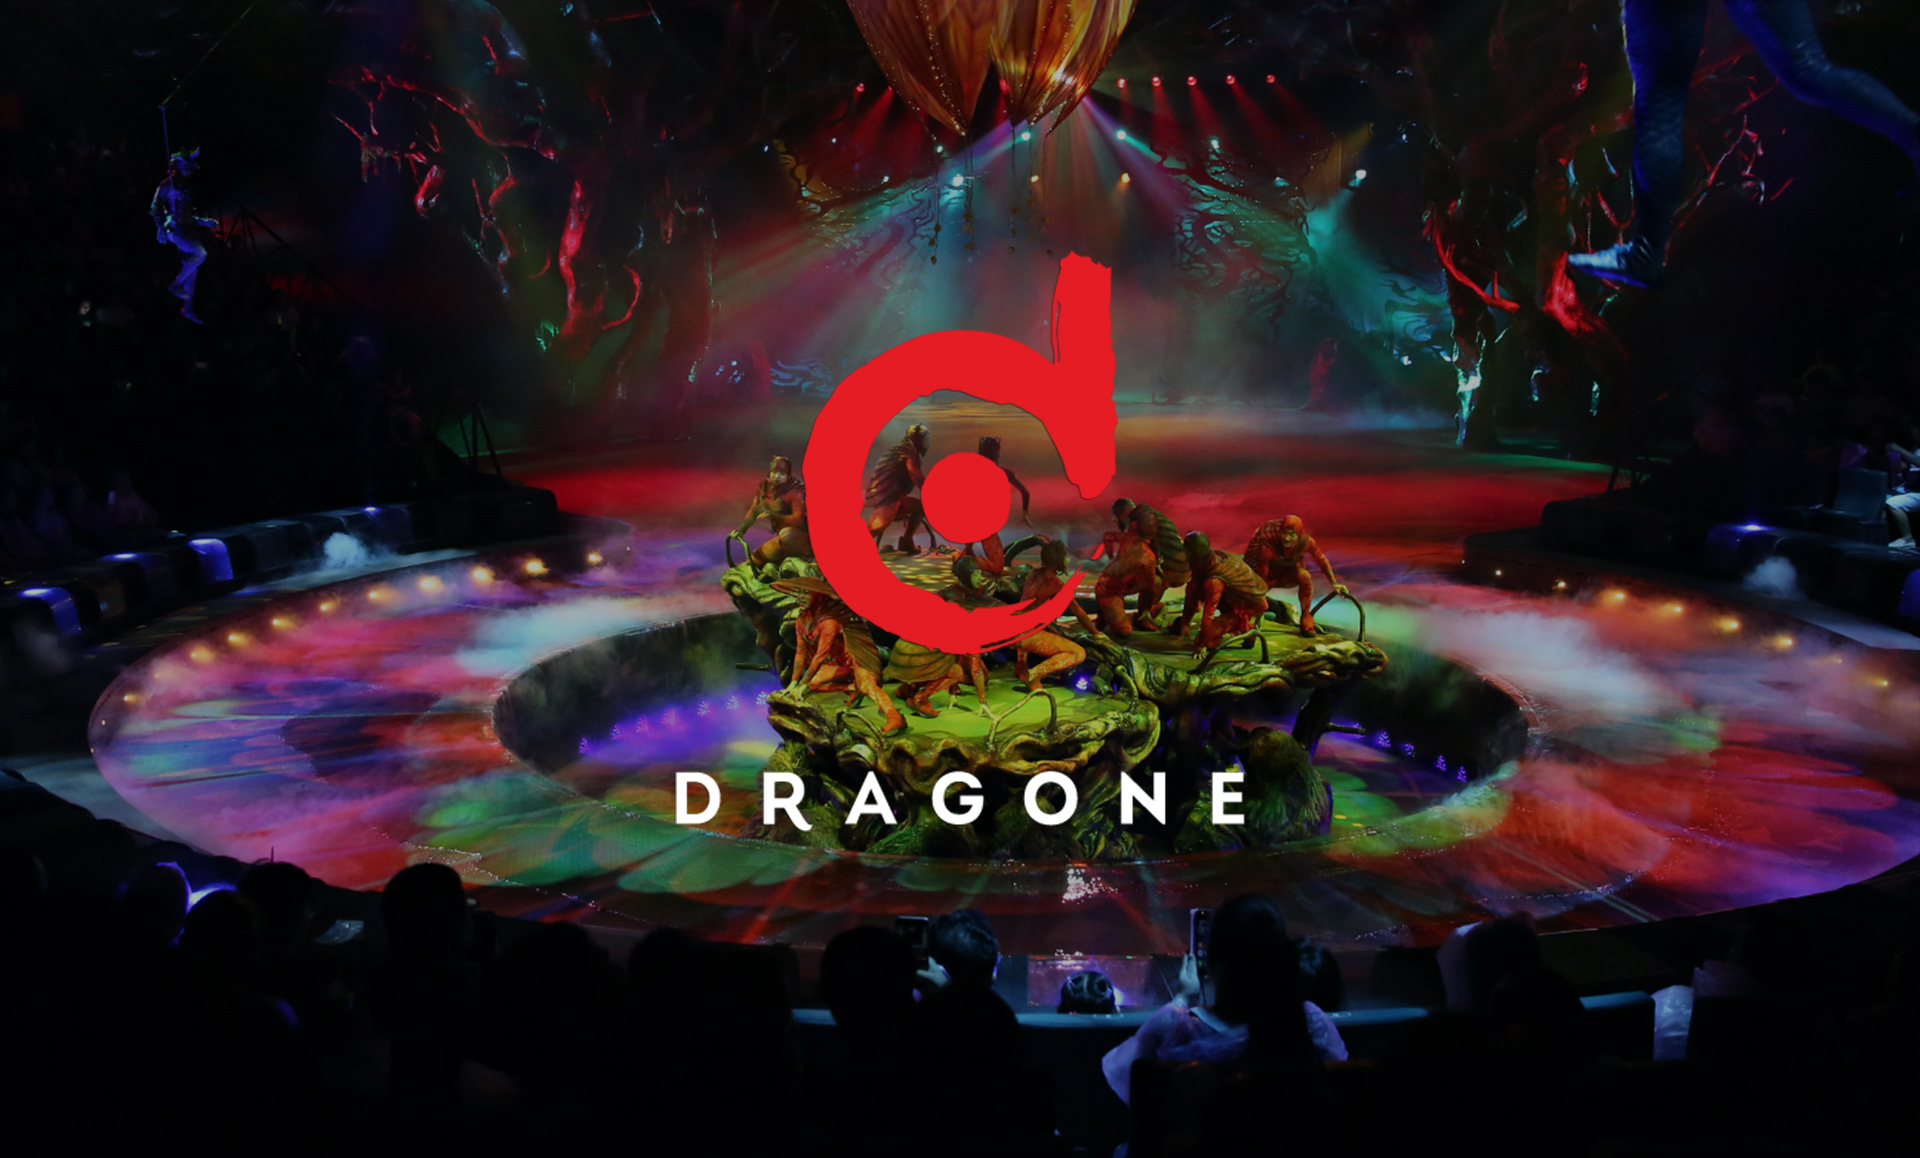 Read more on Dragone